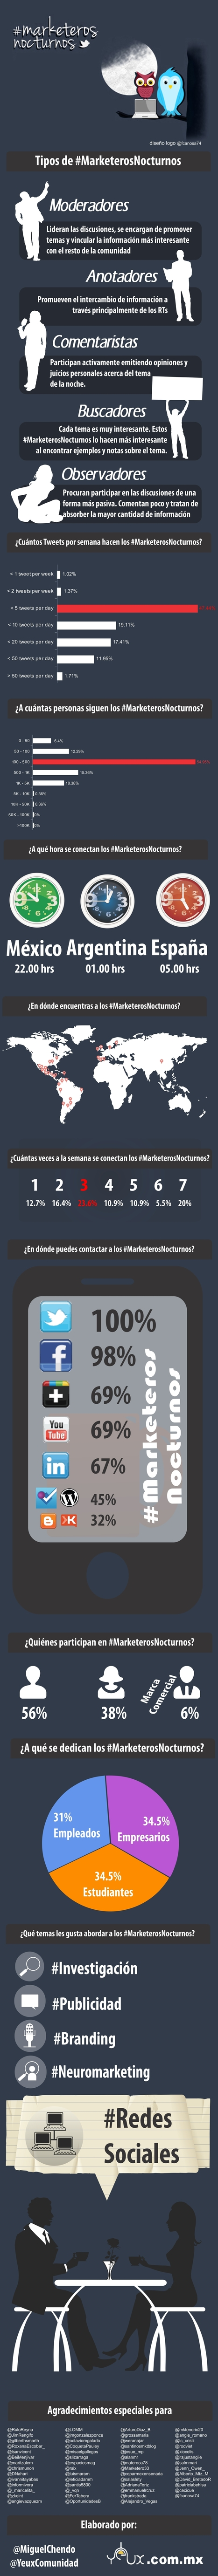 Qué son los #marketerosnocturnos #infografia #infographic #marketing #socialmedia | Seo, Social Media Marketing | Scoop.it